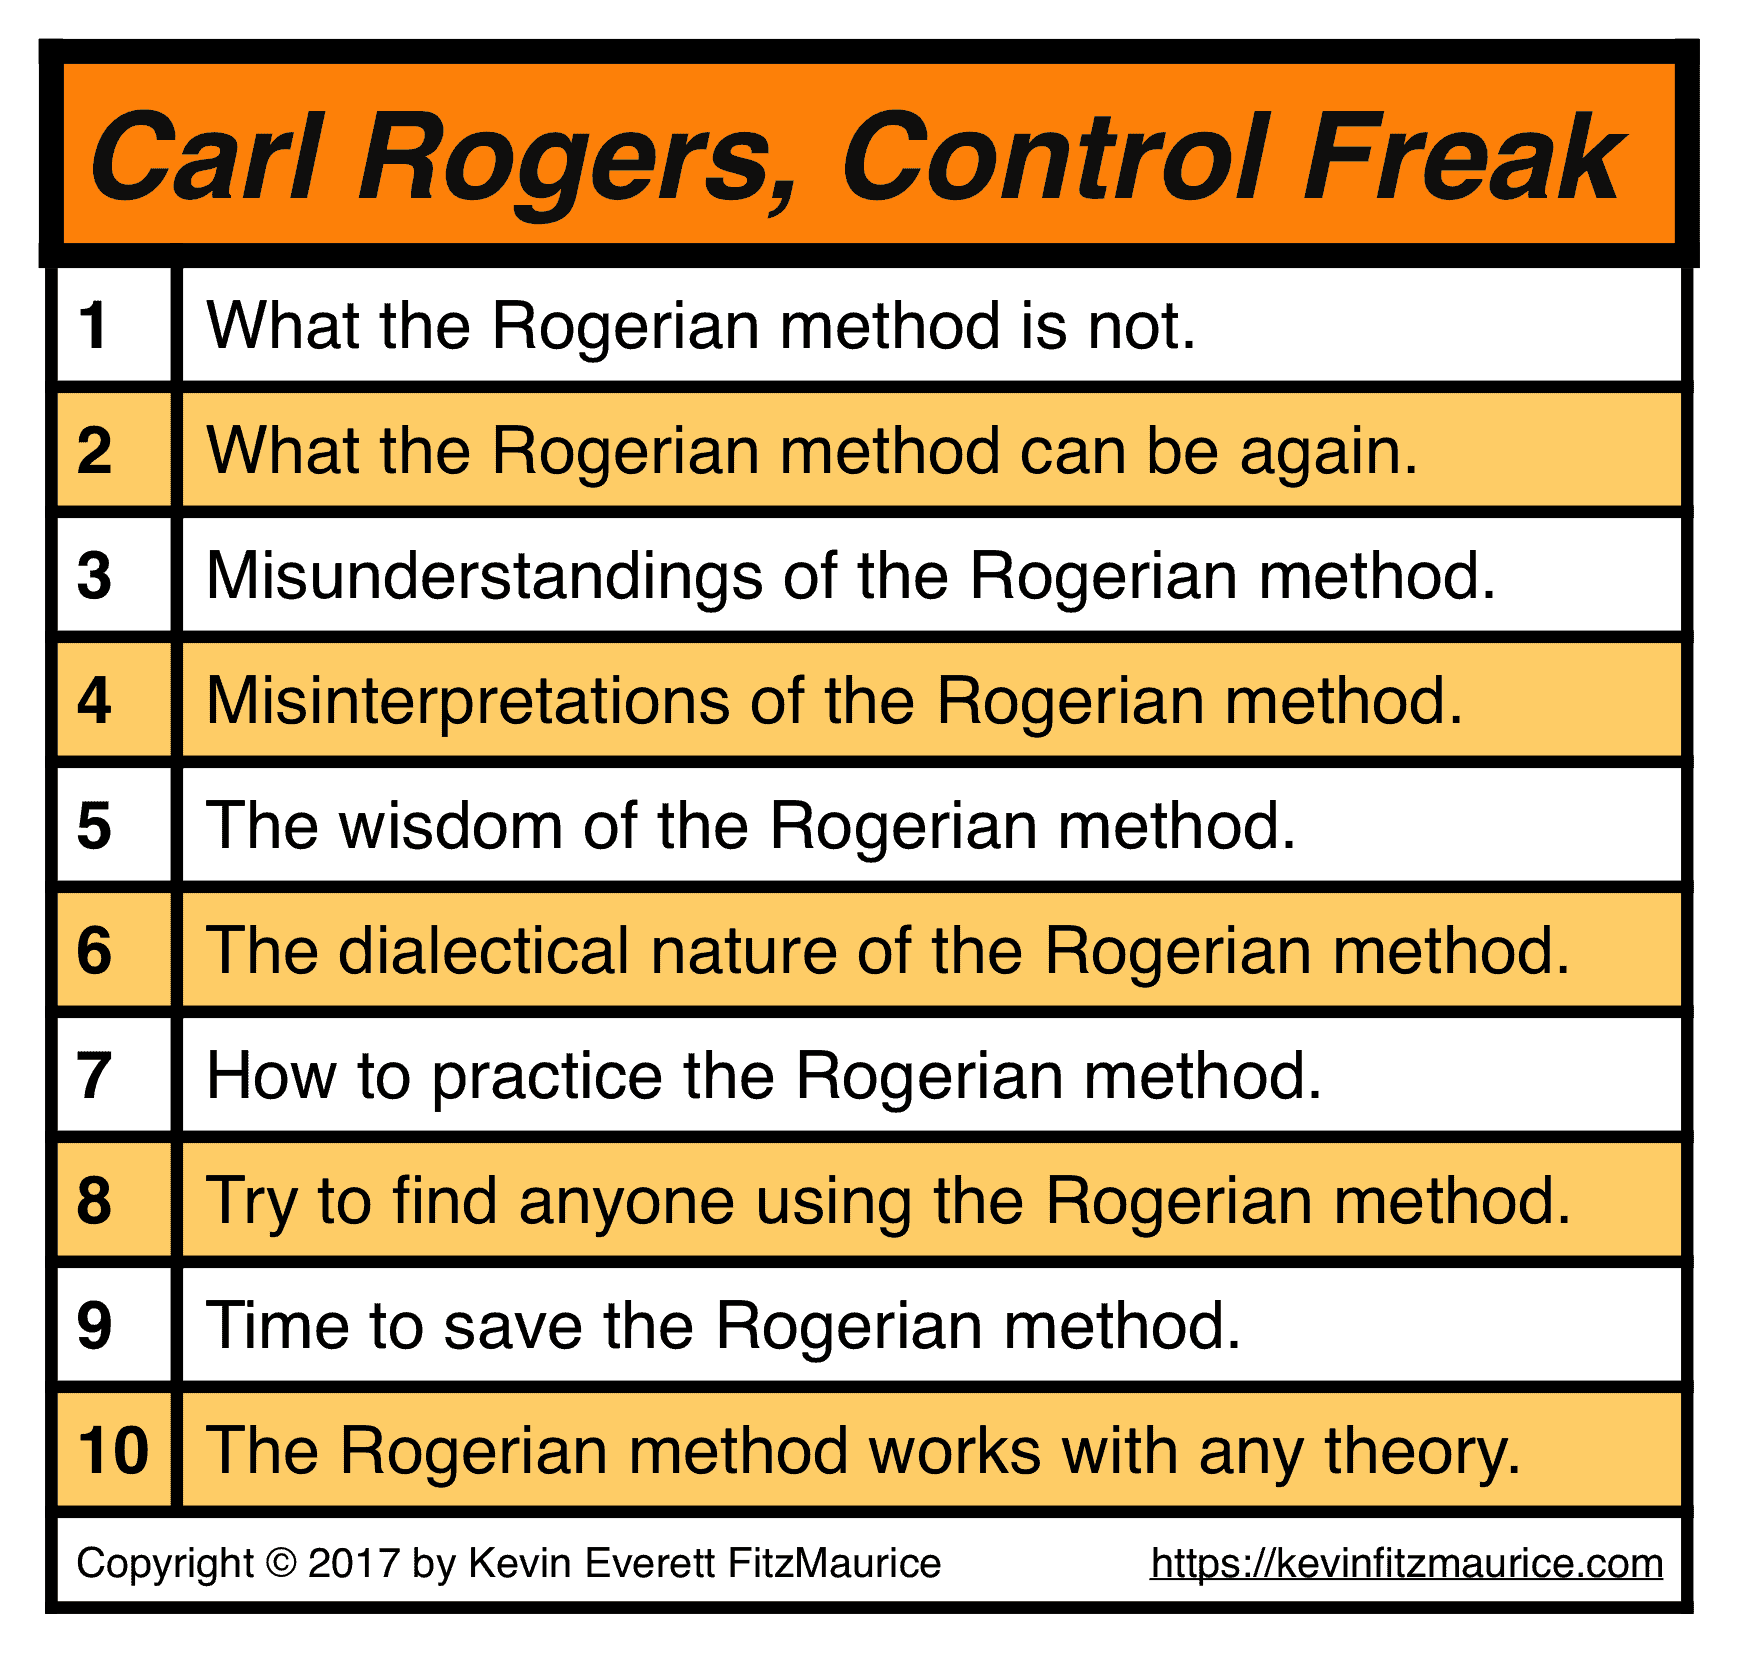 Carl Rogers, Control Freak points